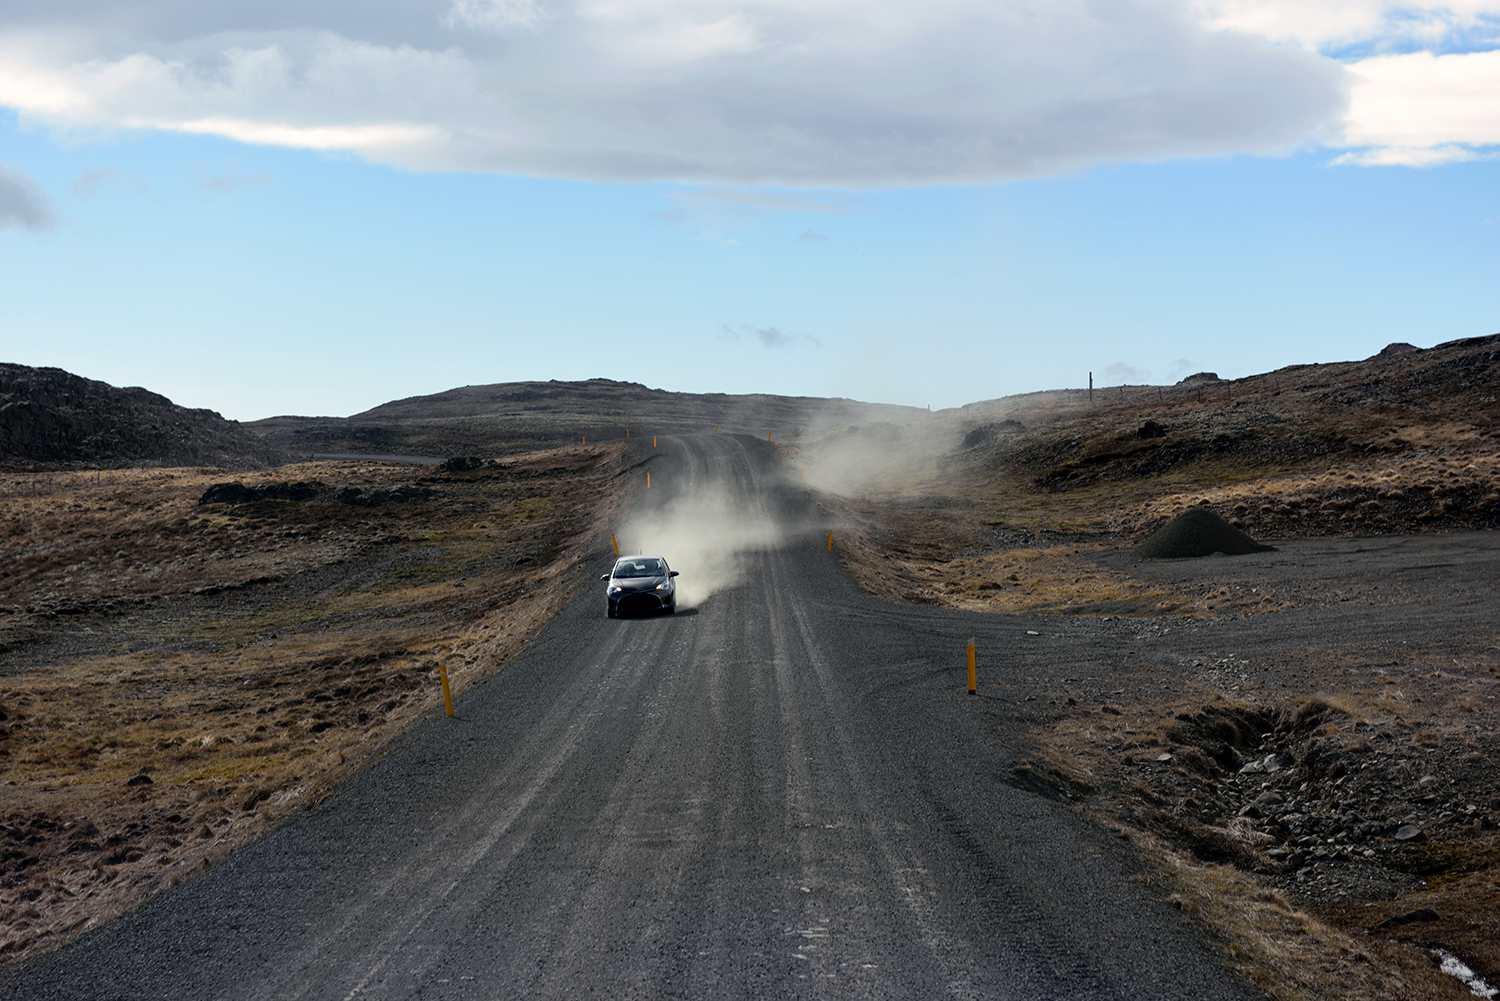 Car driving down a dusty road